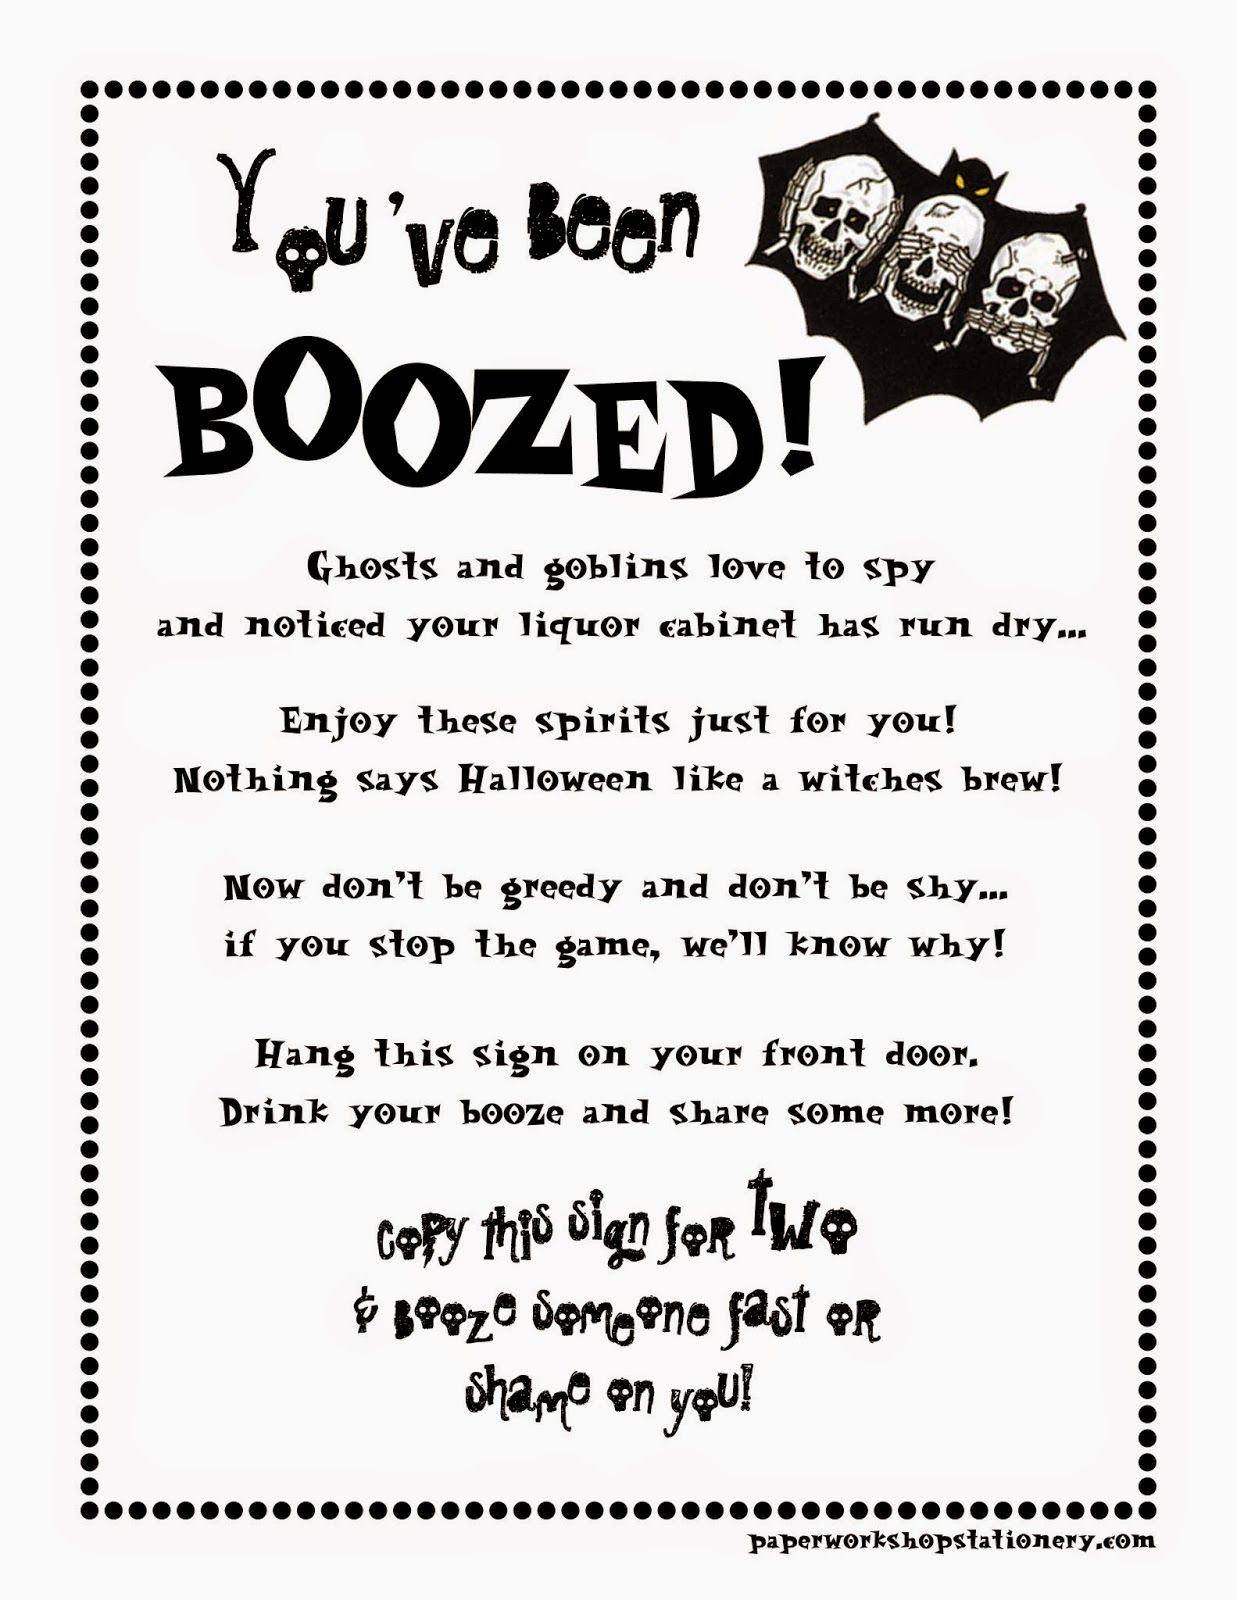 image about You've Been Boozed Printable called Youve been Boozed! Paperworkshop inside 2019 Halloween 2014